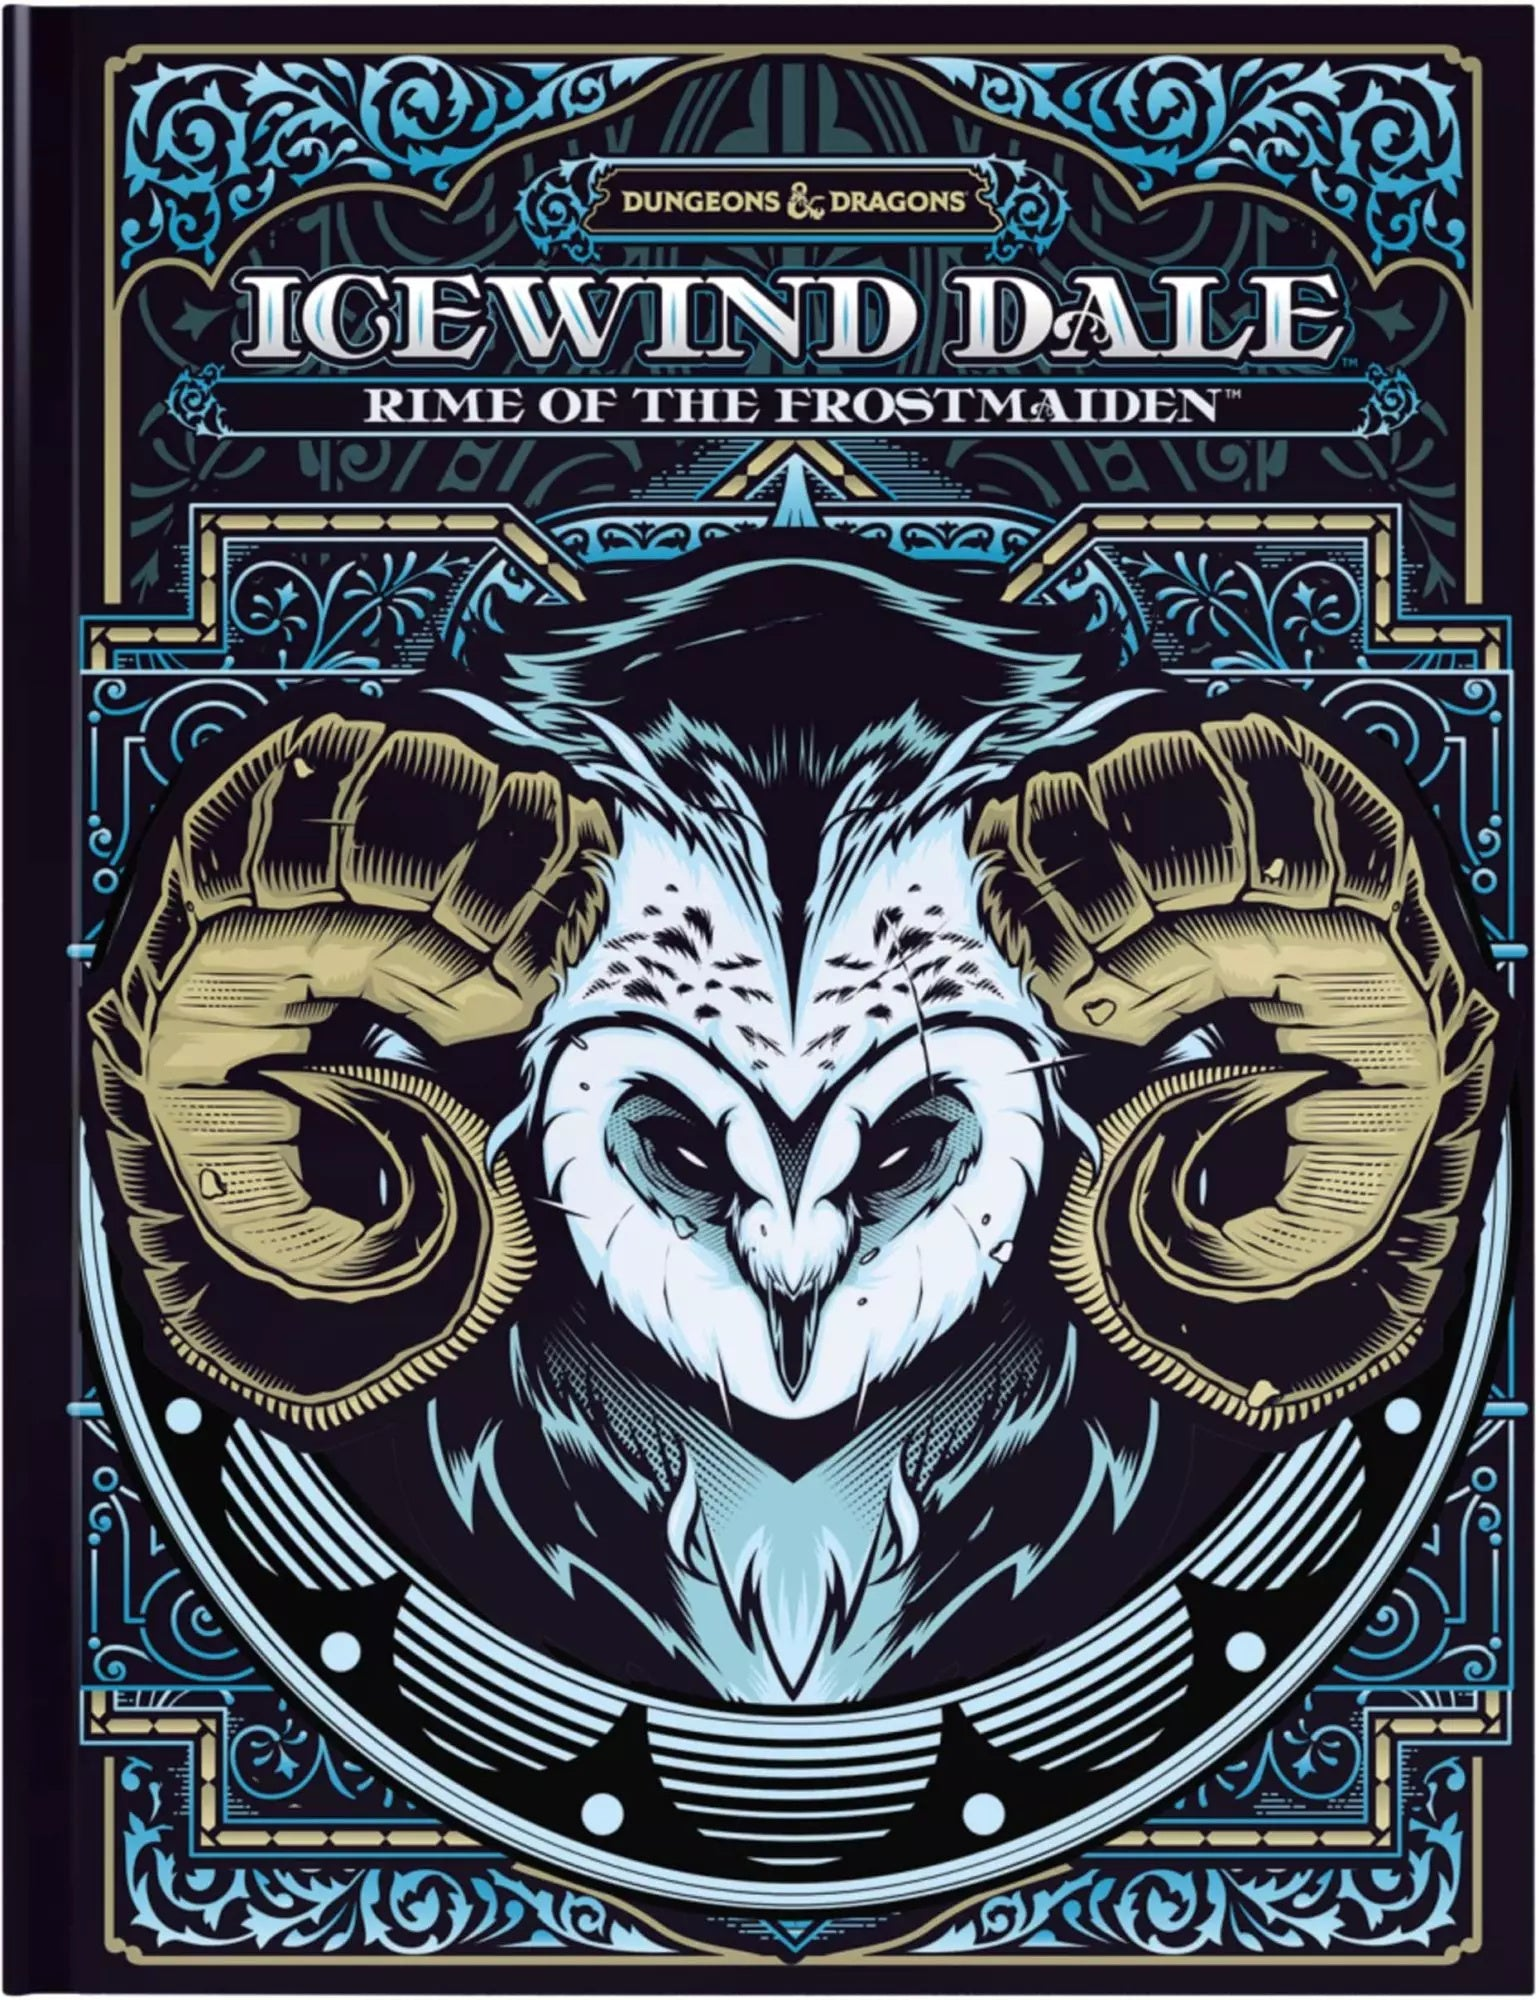 Dungeons & Dragons Icewind Dale: Rime of the Frostmaiden - Limited Edition | Pro Gamers and Collectables